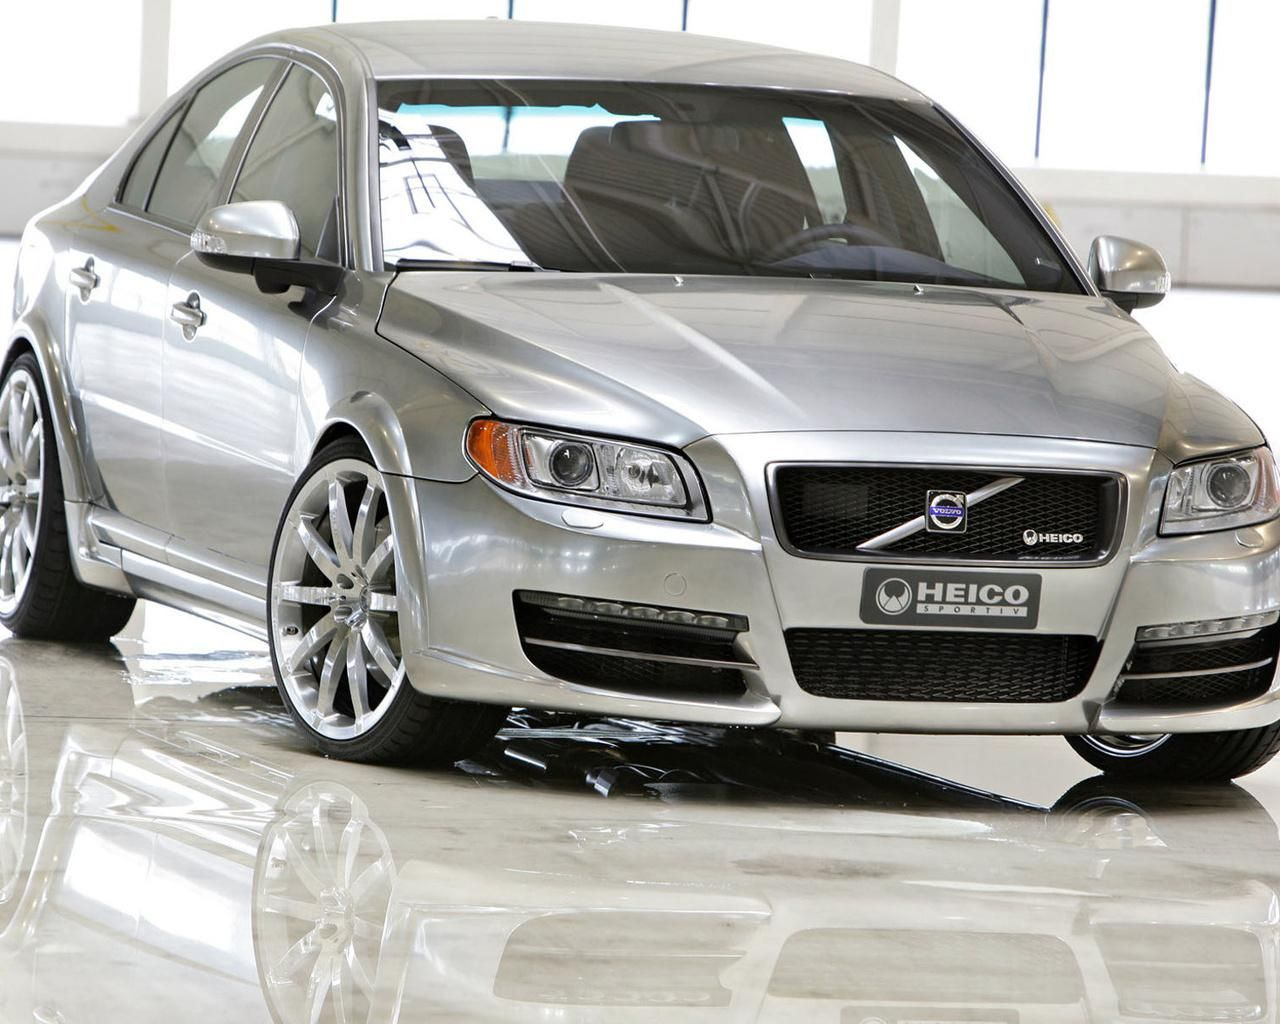 Volvo S80 Heico  HD Wallpaper - http://1sthdwallpapers.com/volvo-s80-heico-hd-wallpapers/